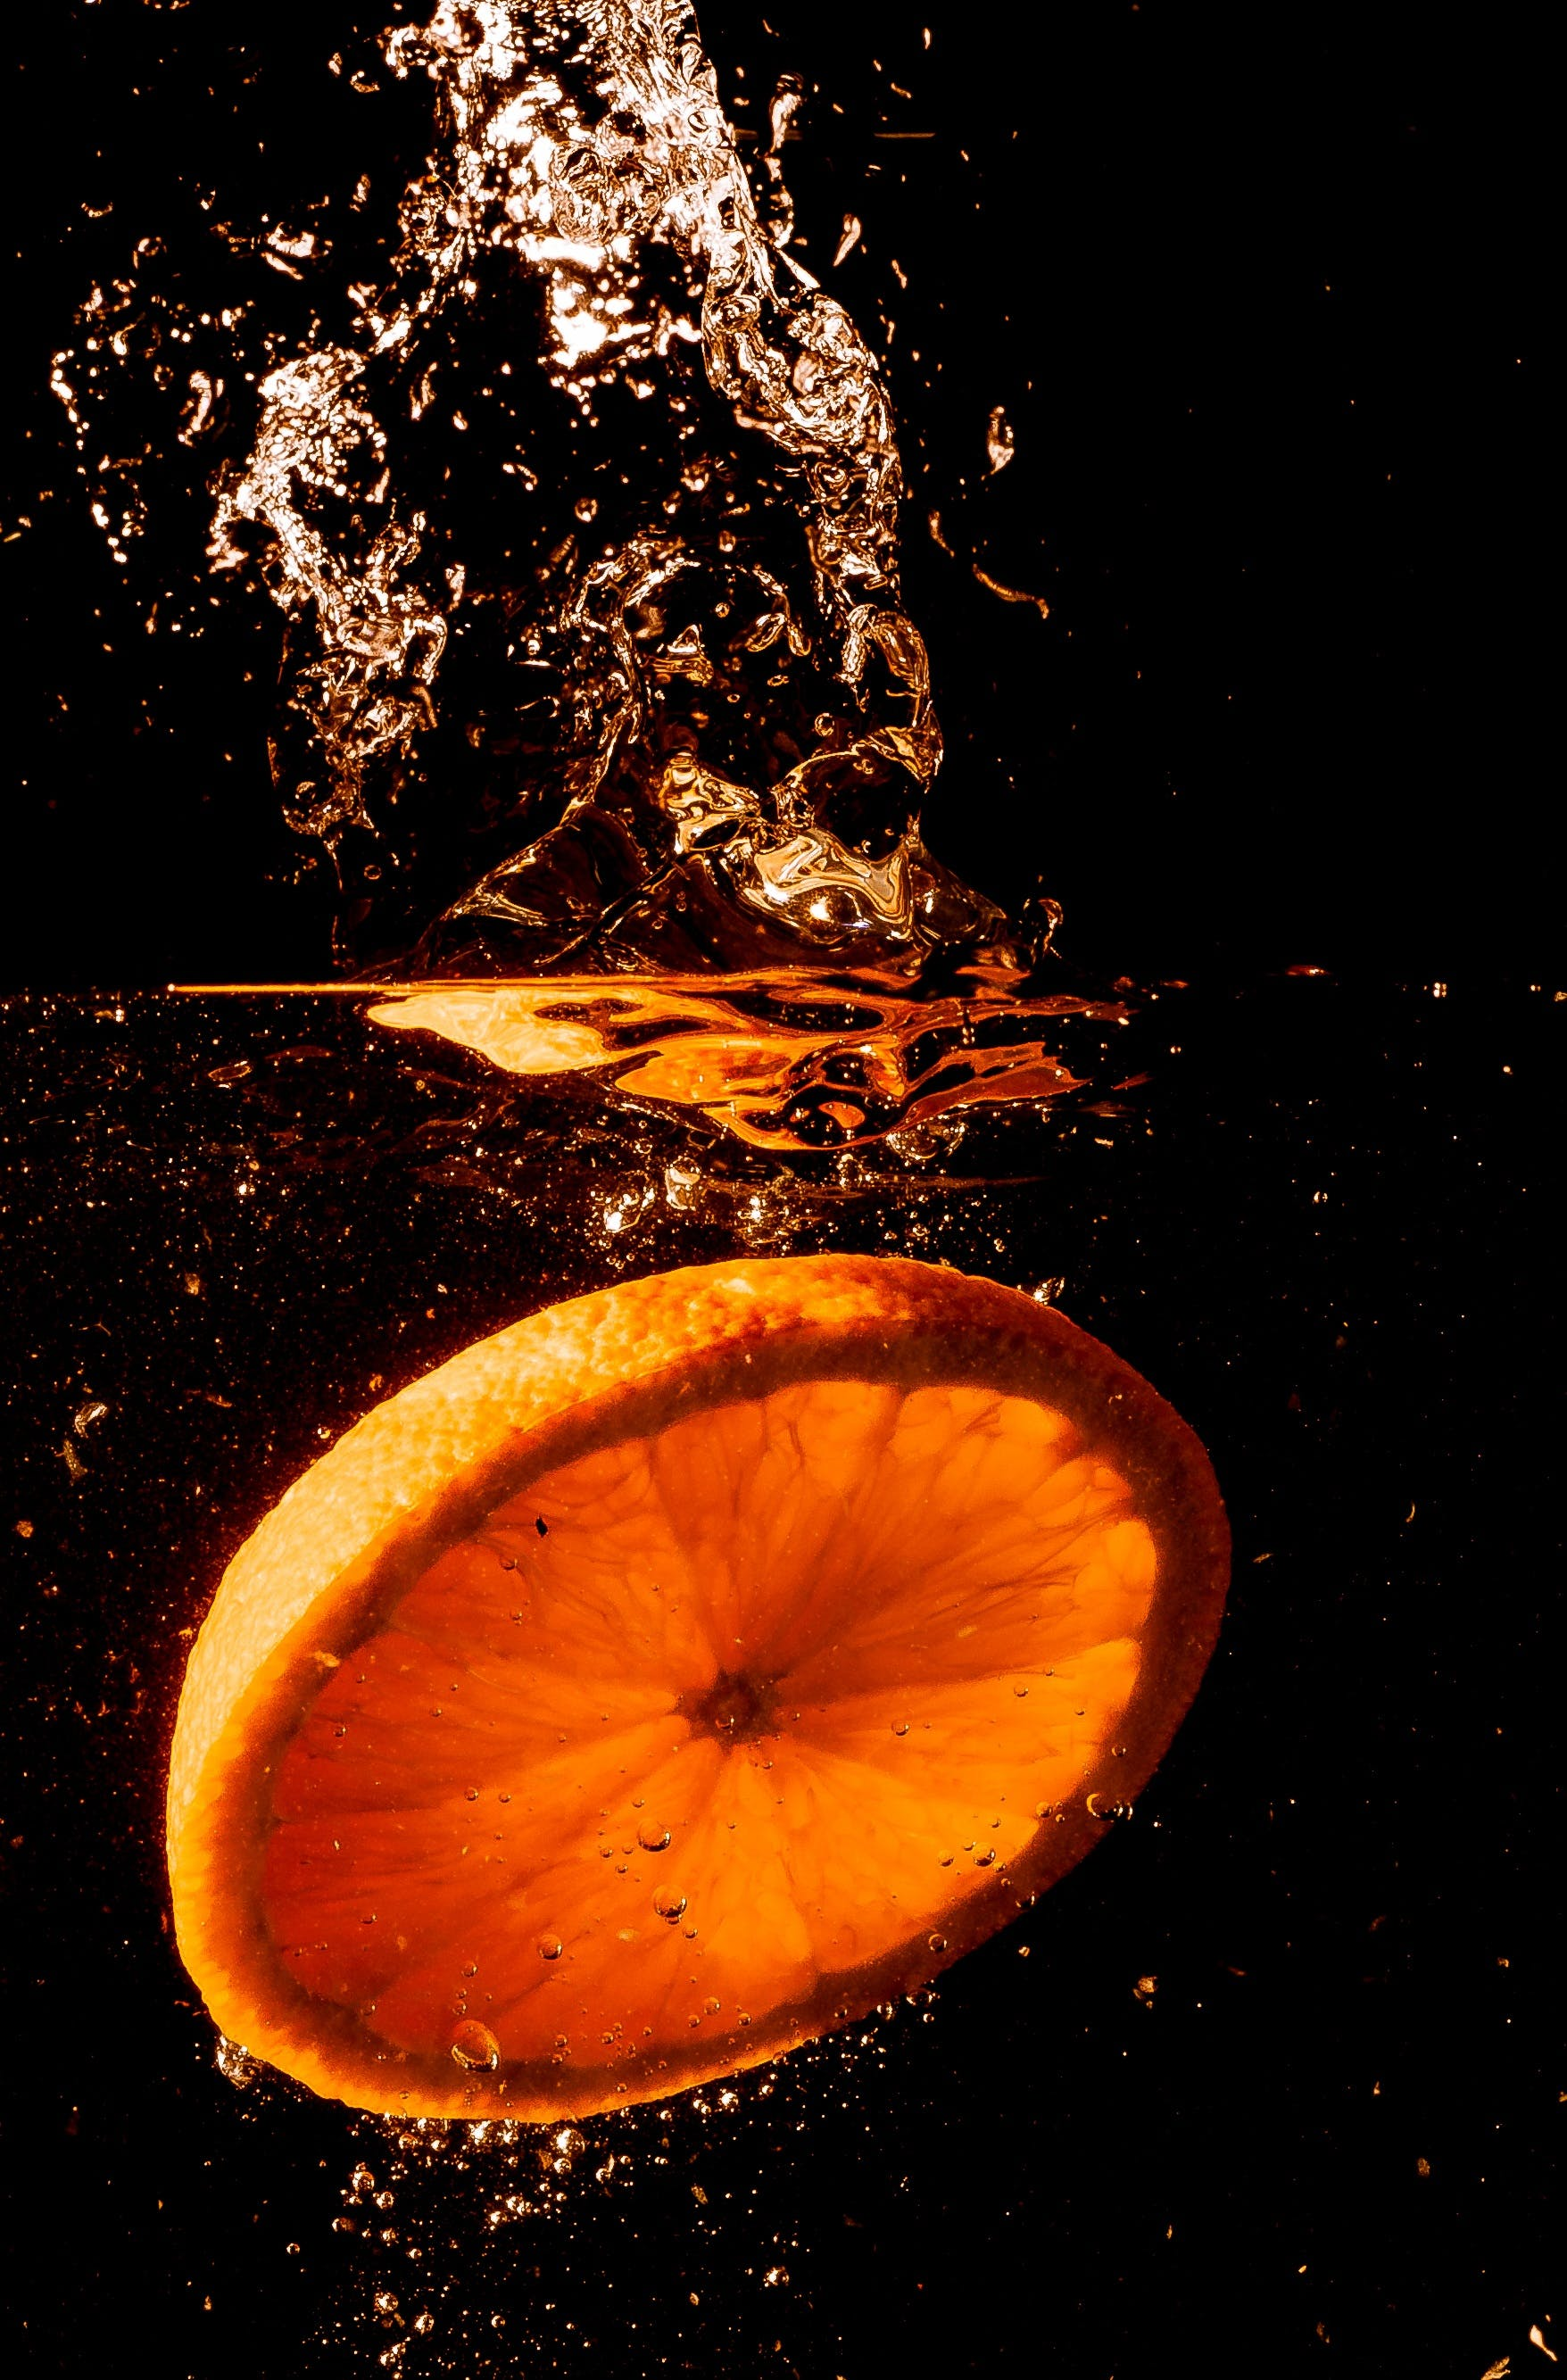 Free stock photo of food, water, drink, orange